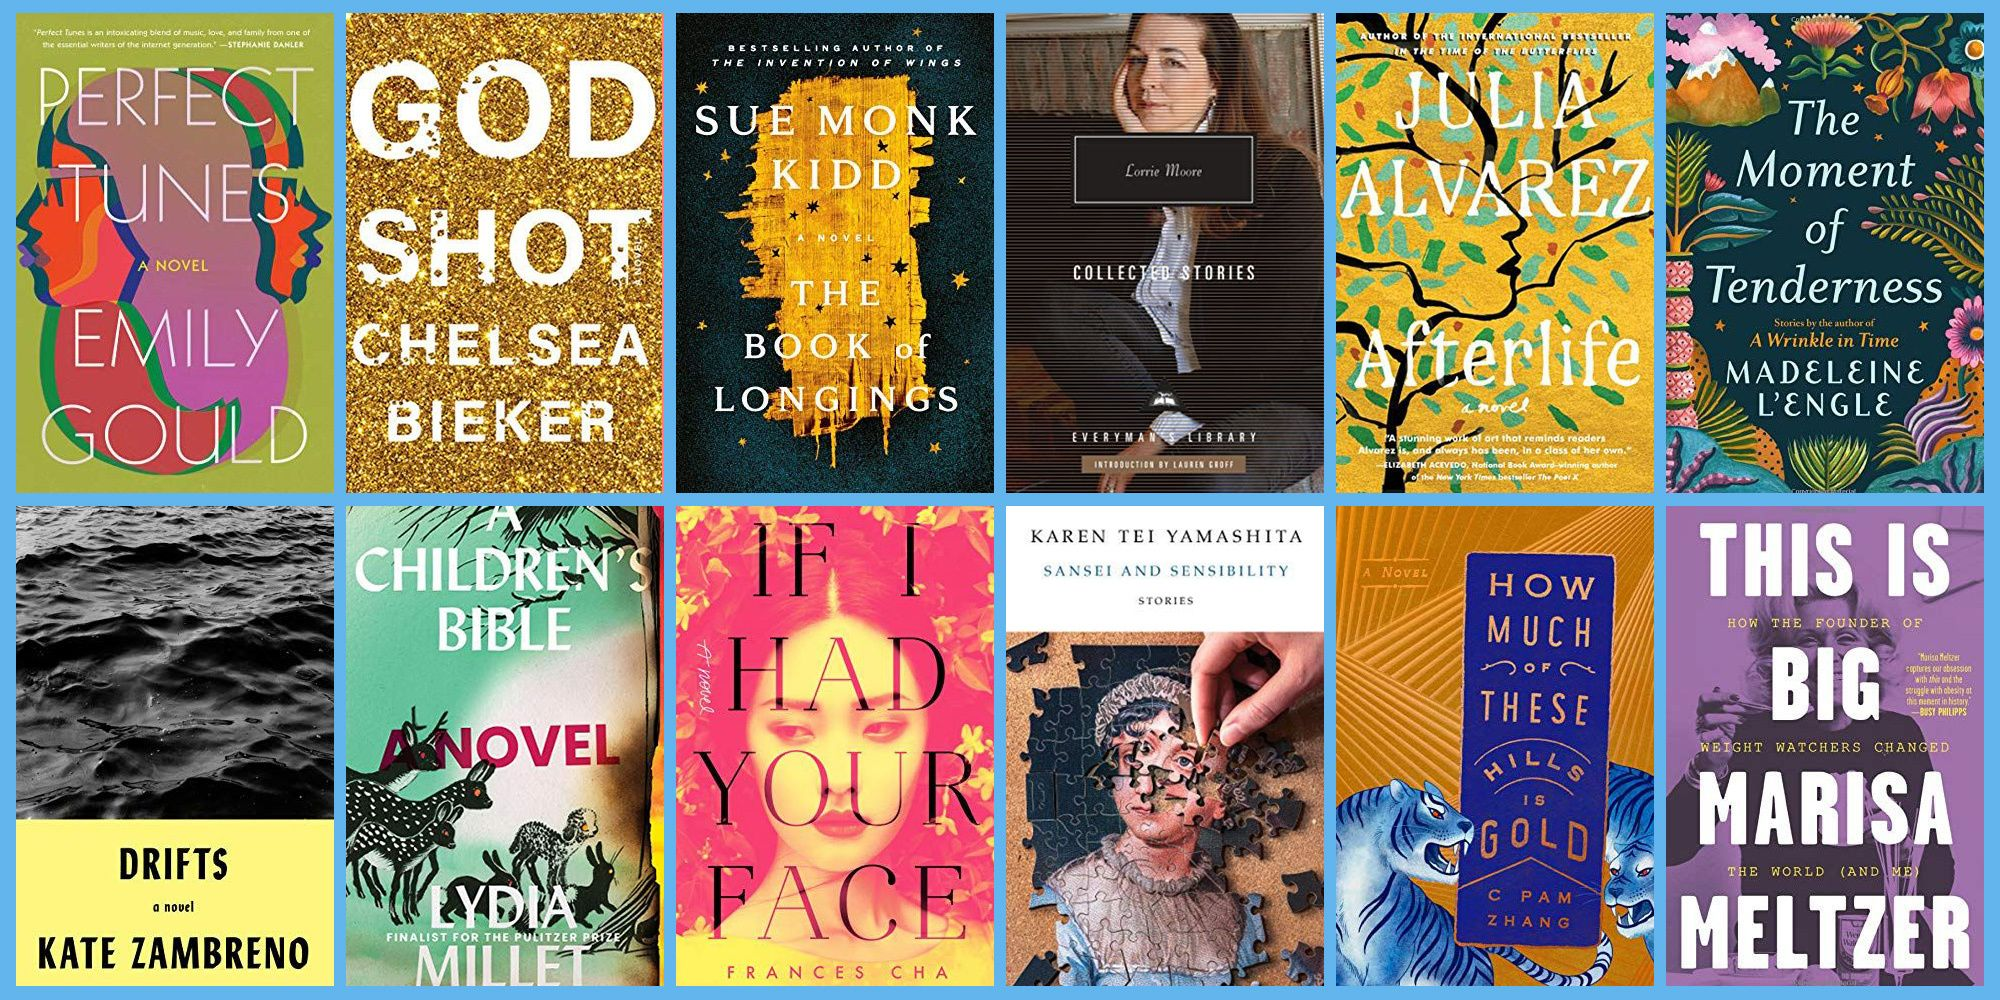 The Best Spring Books of 2020 Will Transport You Wherever You Need to Go